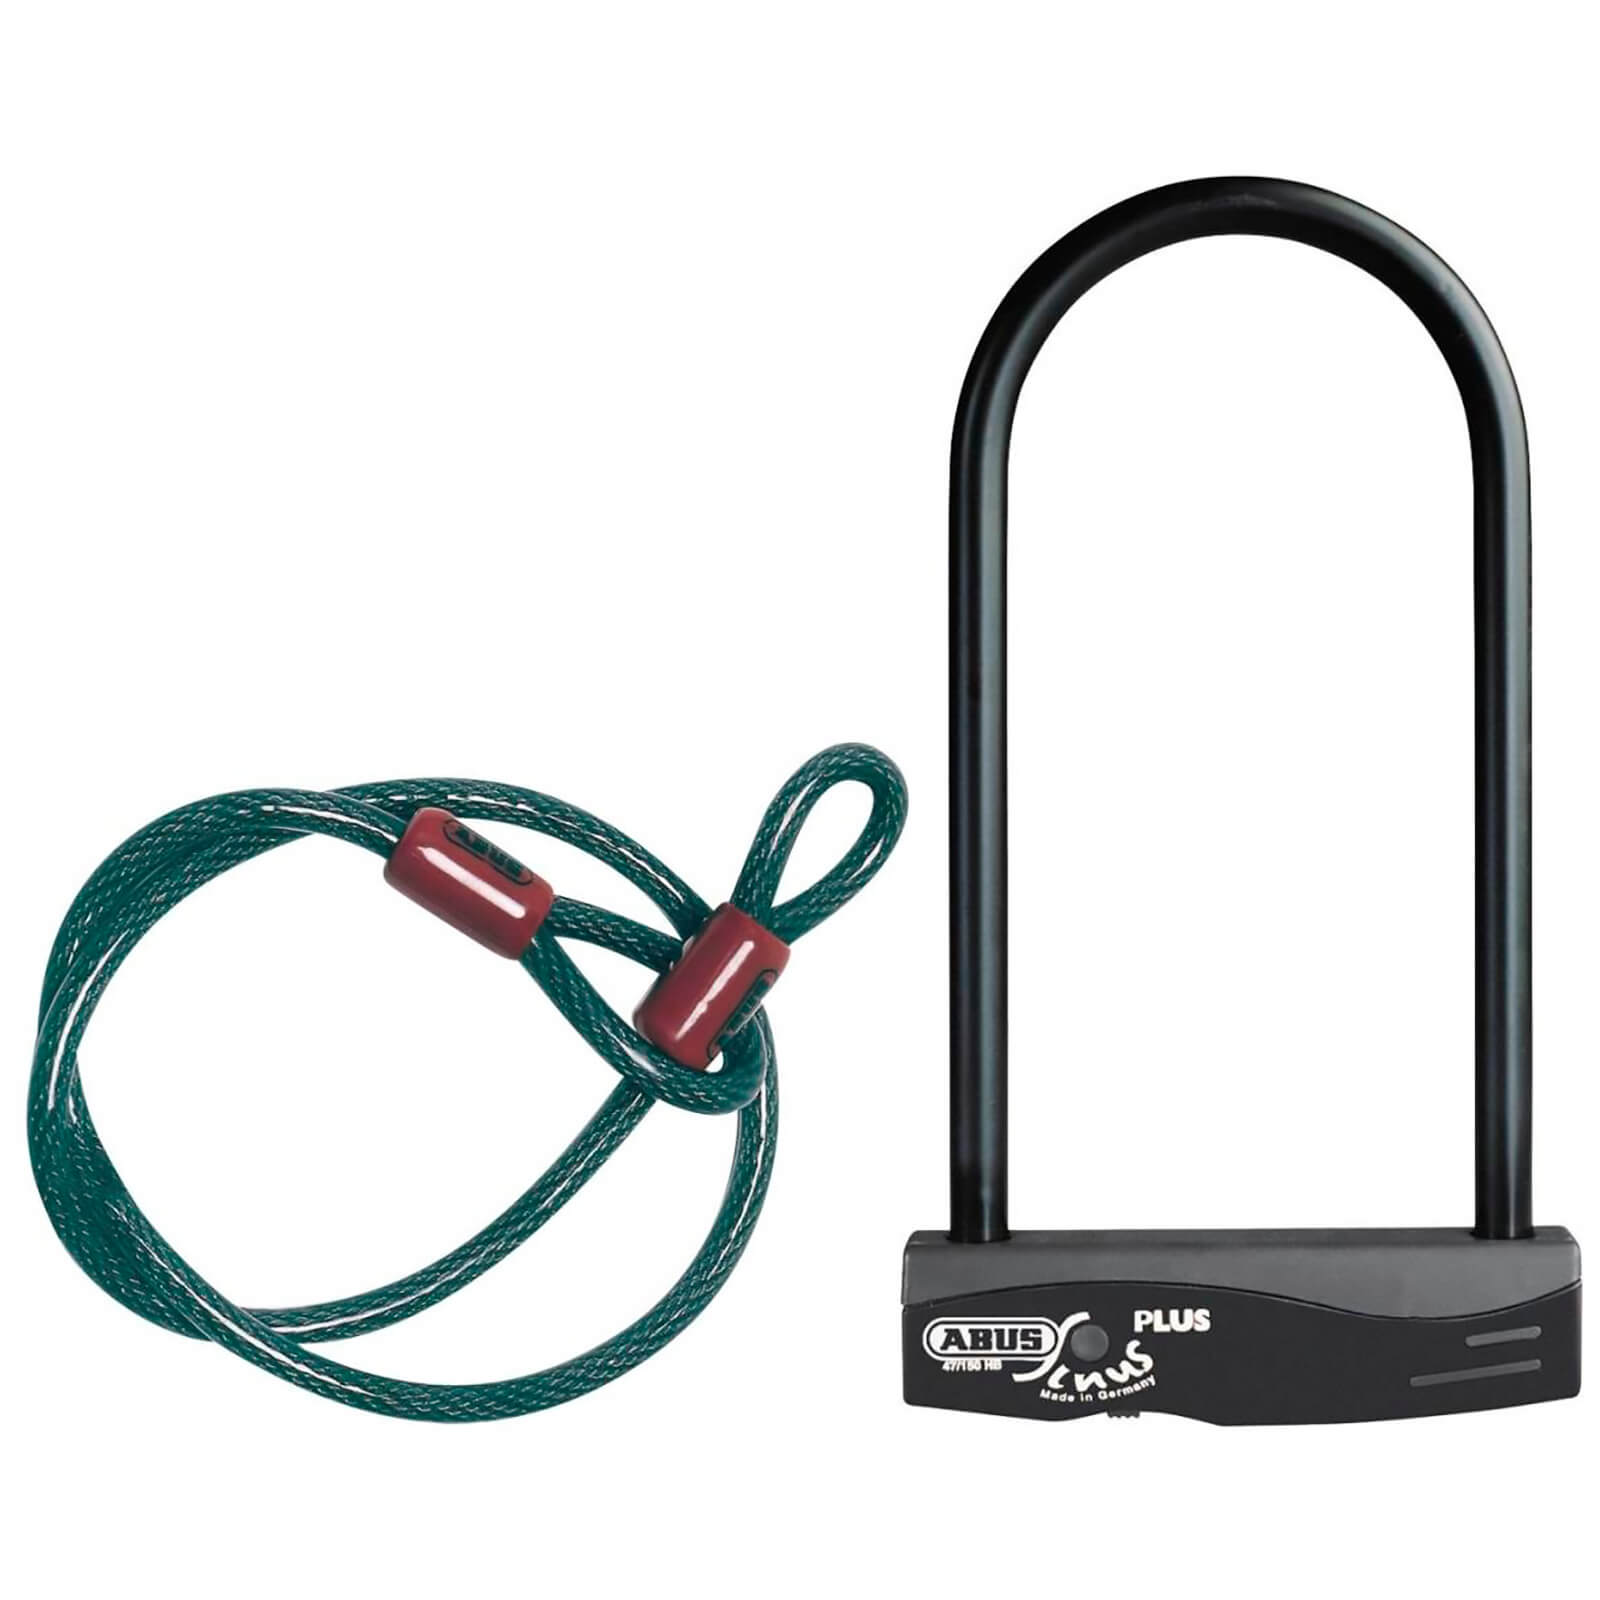 Abus Sinus Plus D Lock and Cable Set